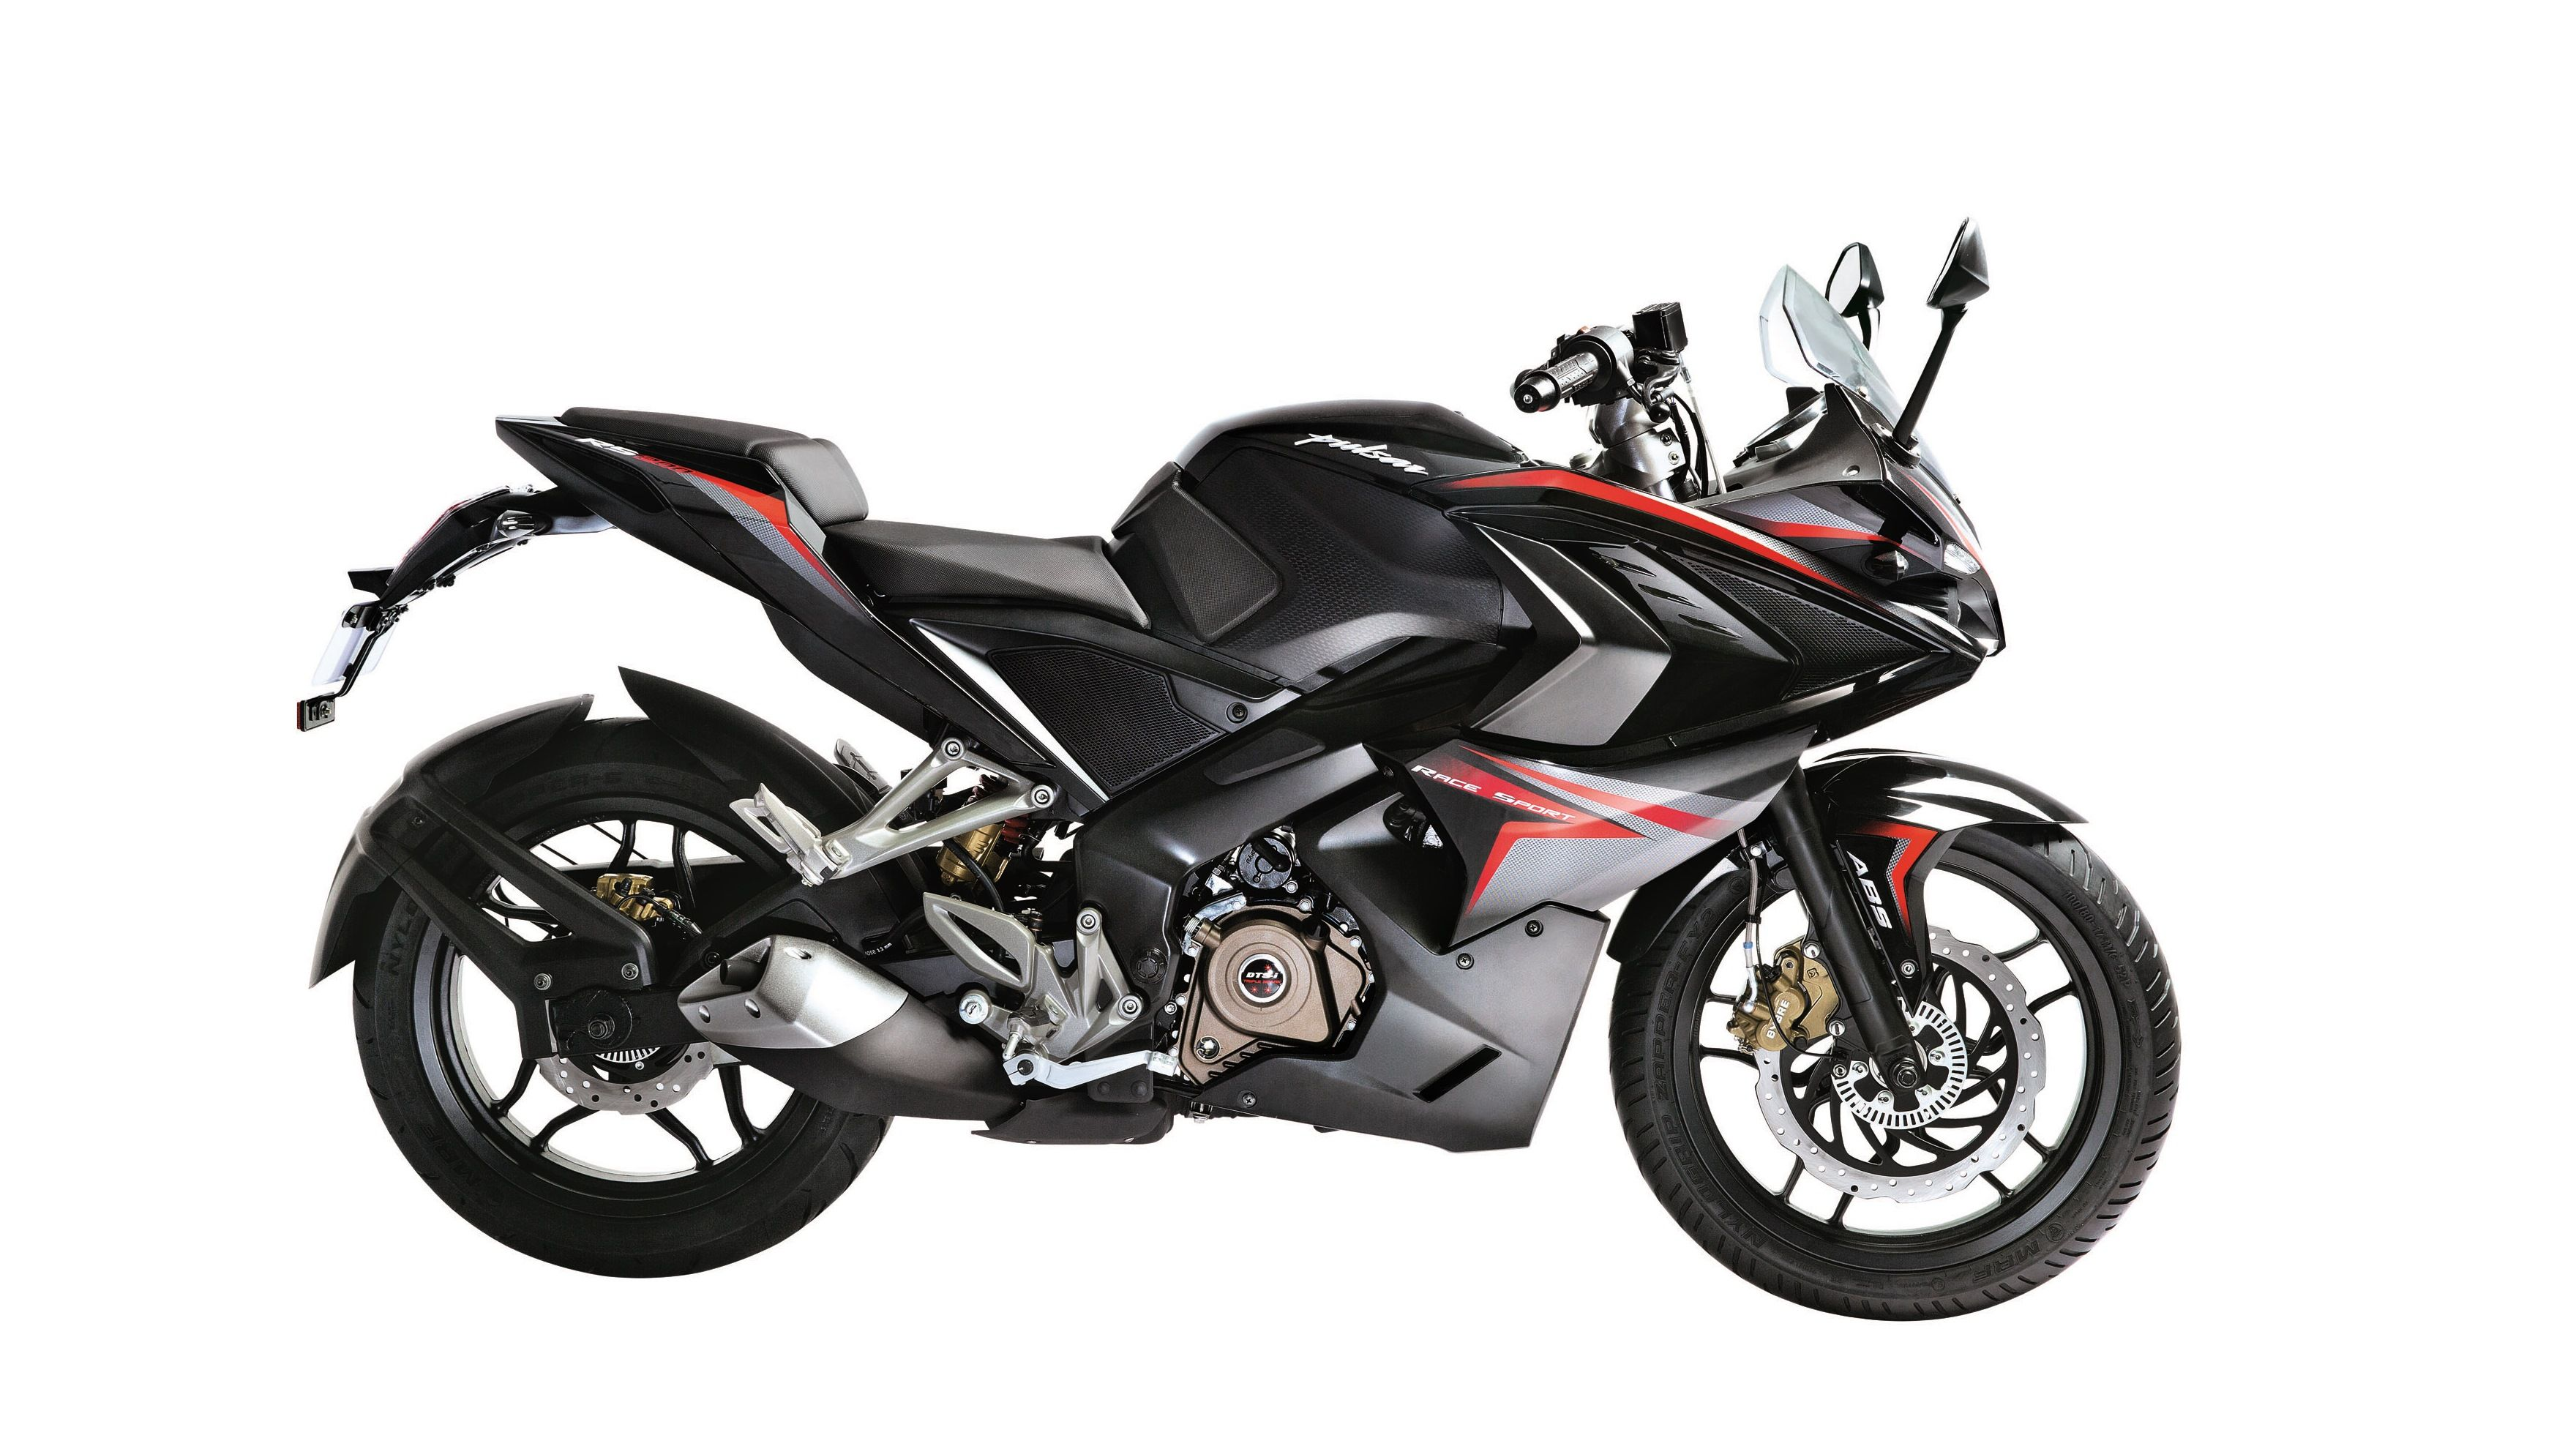 Your Favourite Pulsar Rs 200 Is Now Available In Black Color Too